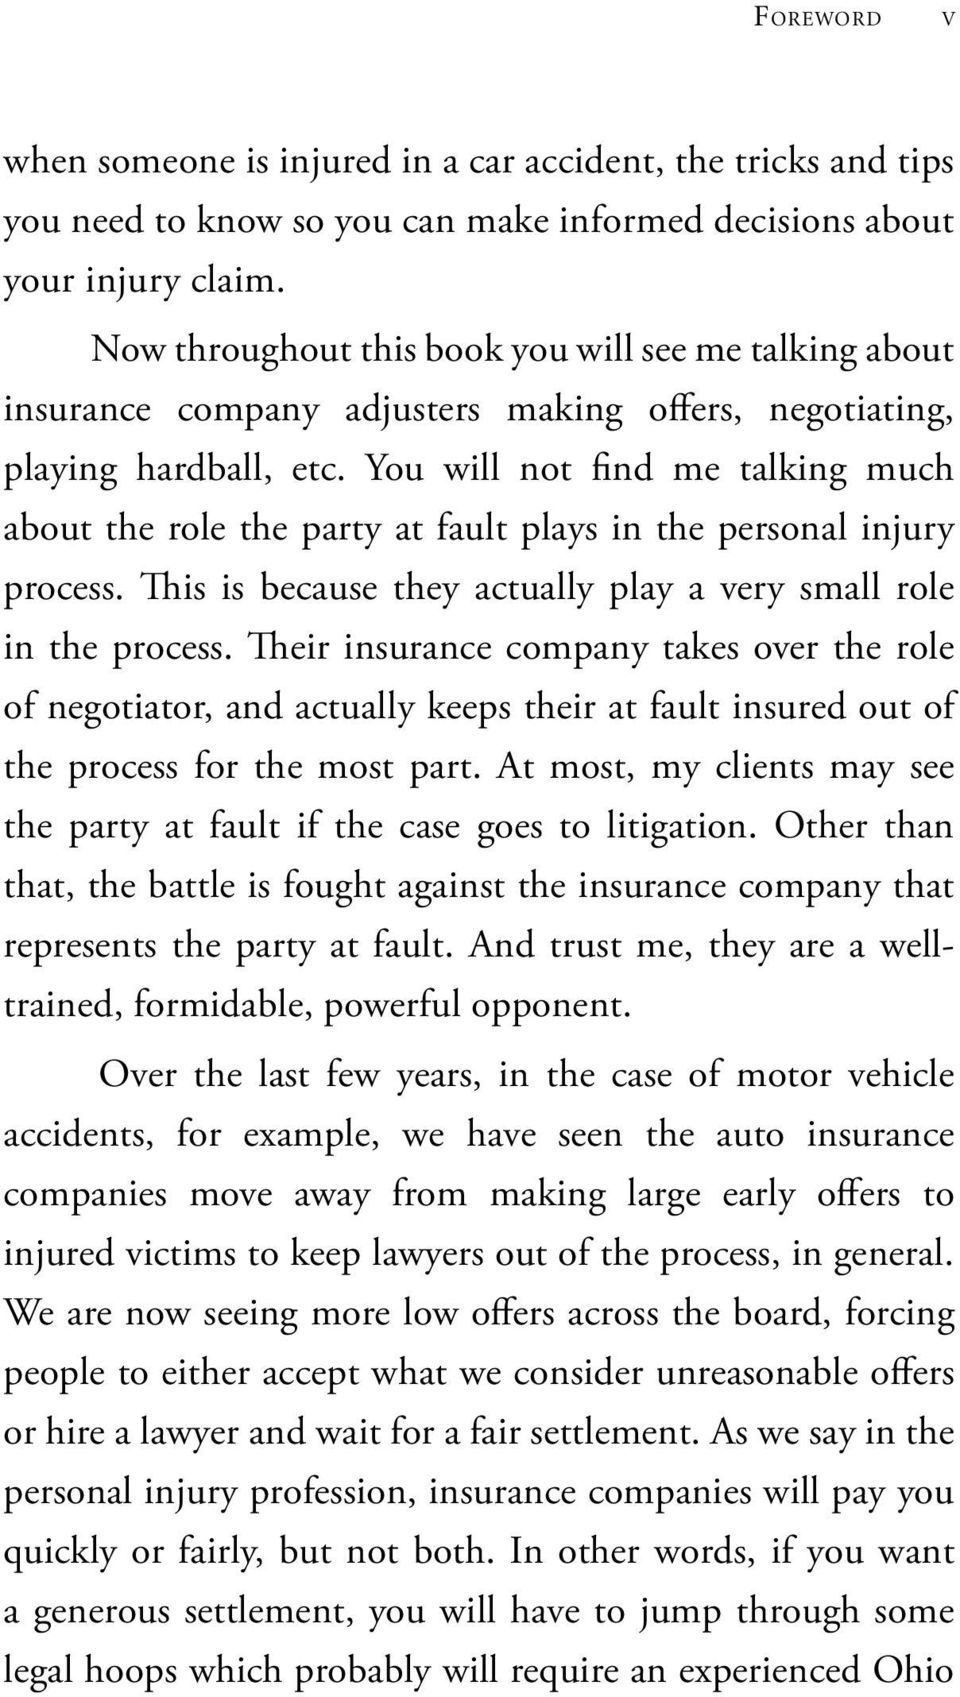 You will not find me talking much about the role the party at fault plays in the personal injury process. This is because they actually play a very small role in the process.